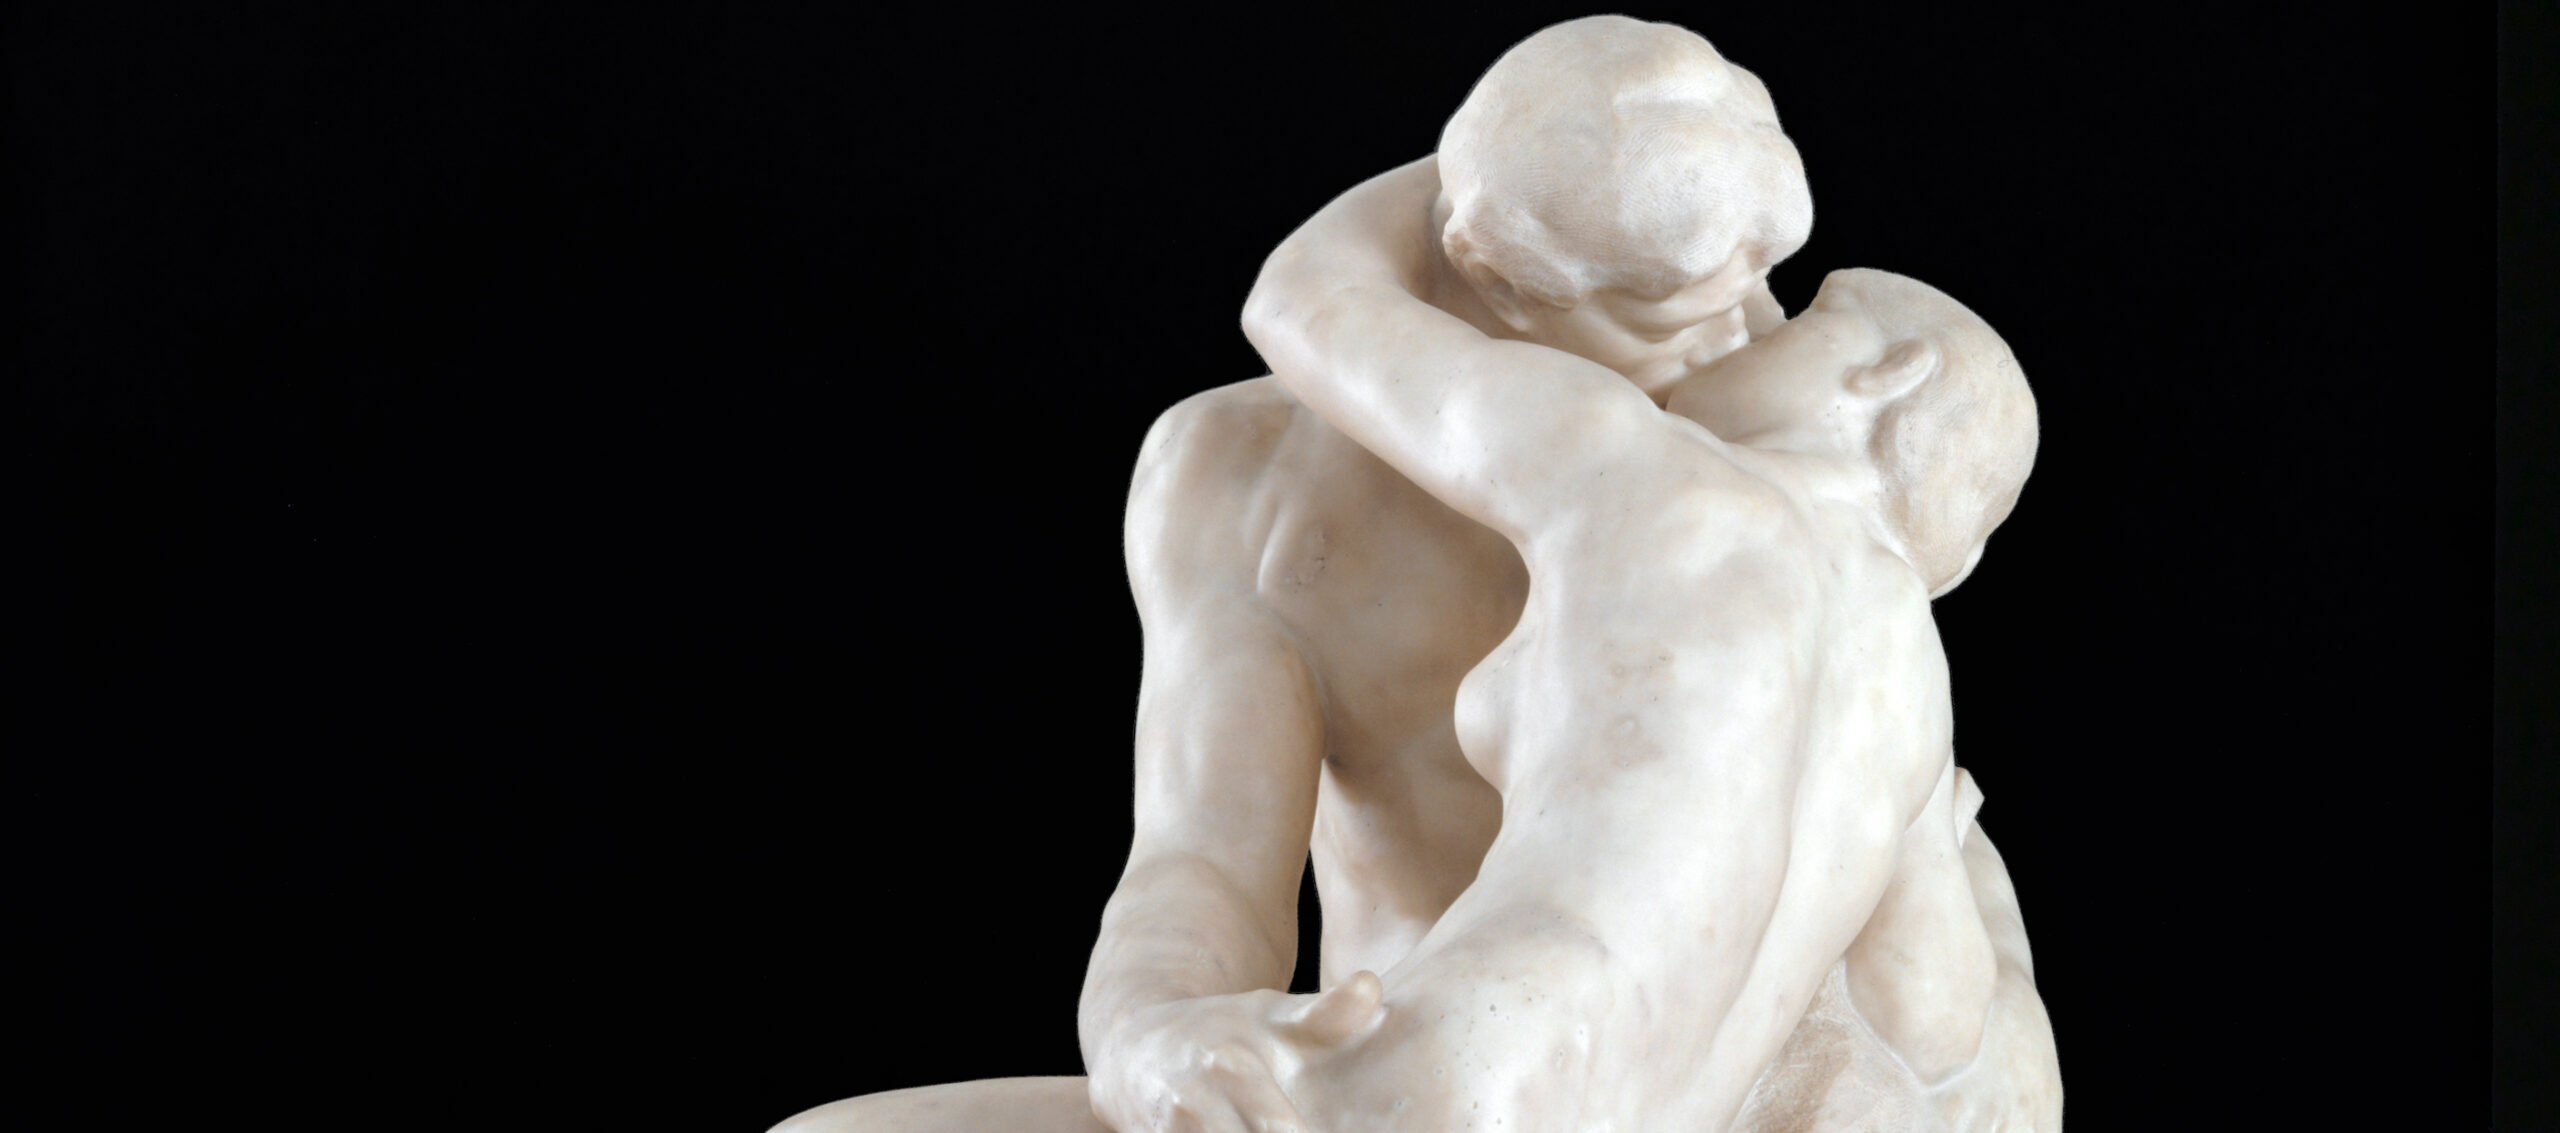 The Making Of Rodin